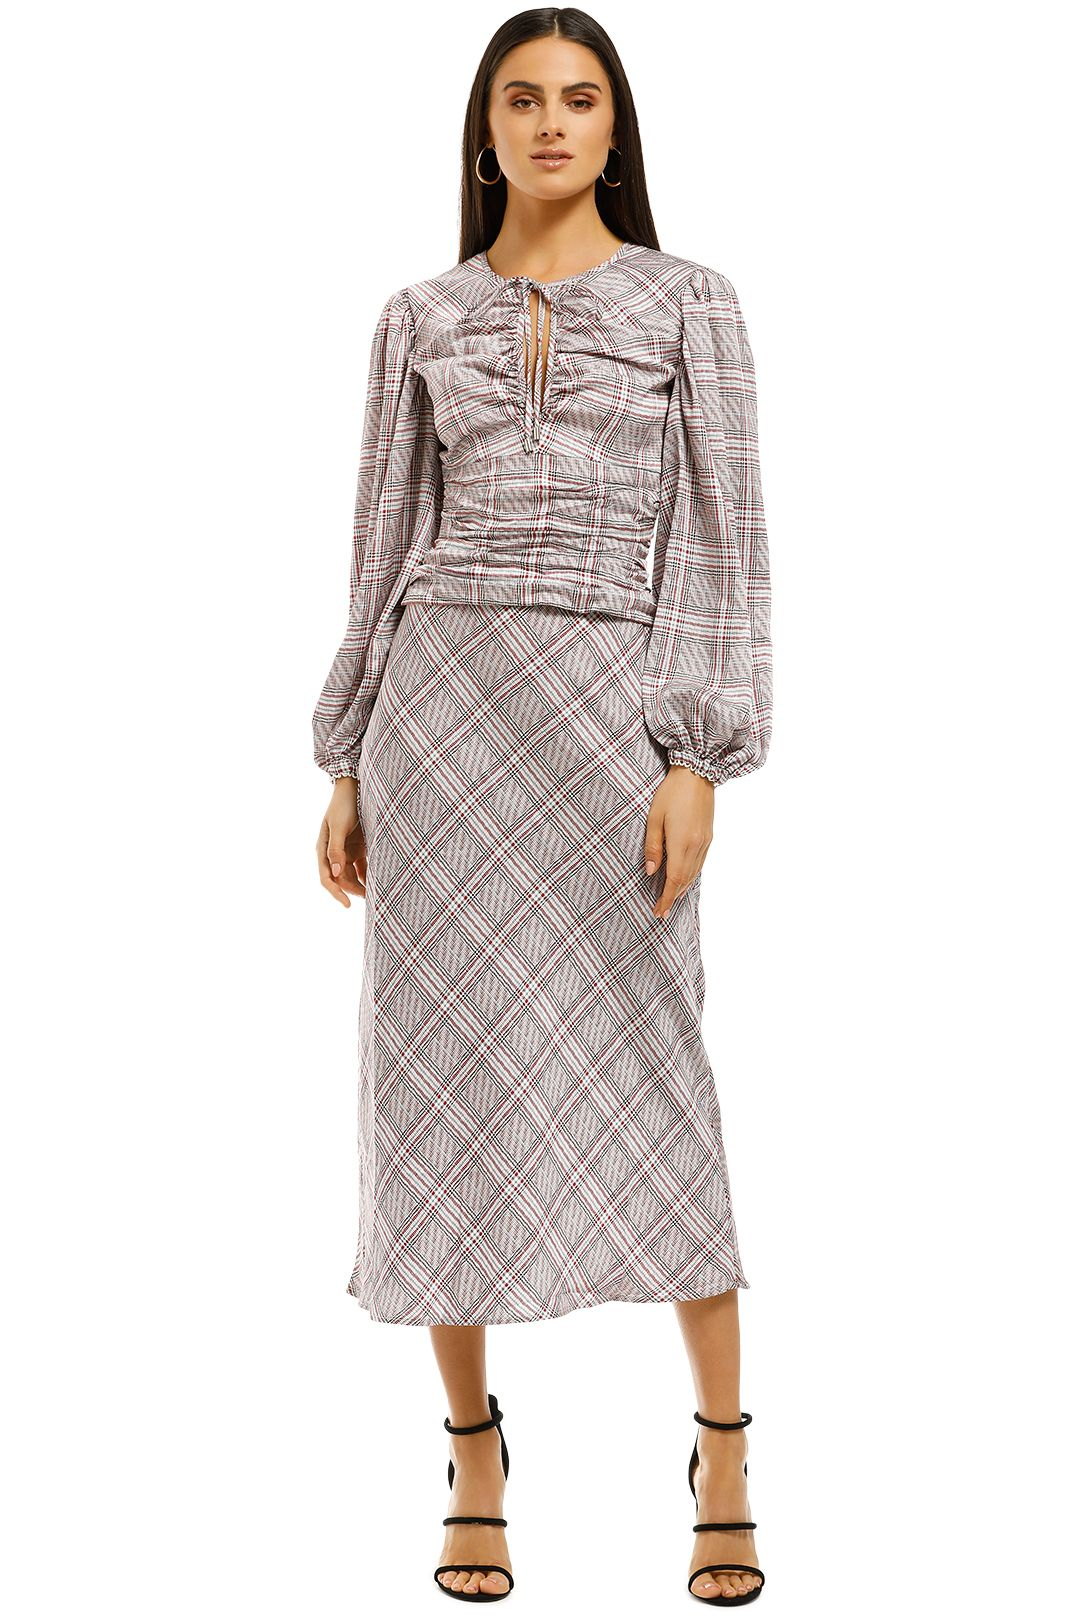 CMEO-Collective-No-Time-Skirt-Plaid-Front